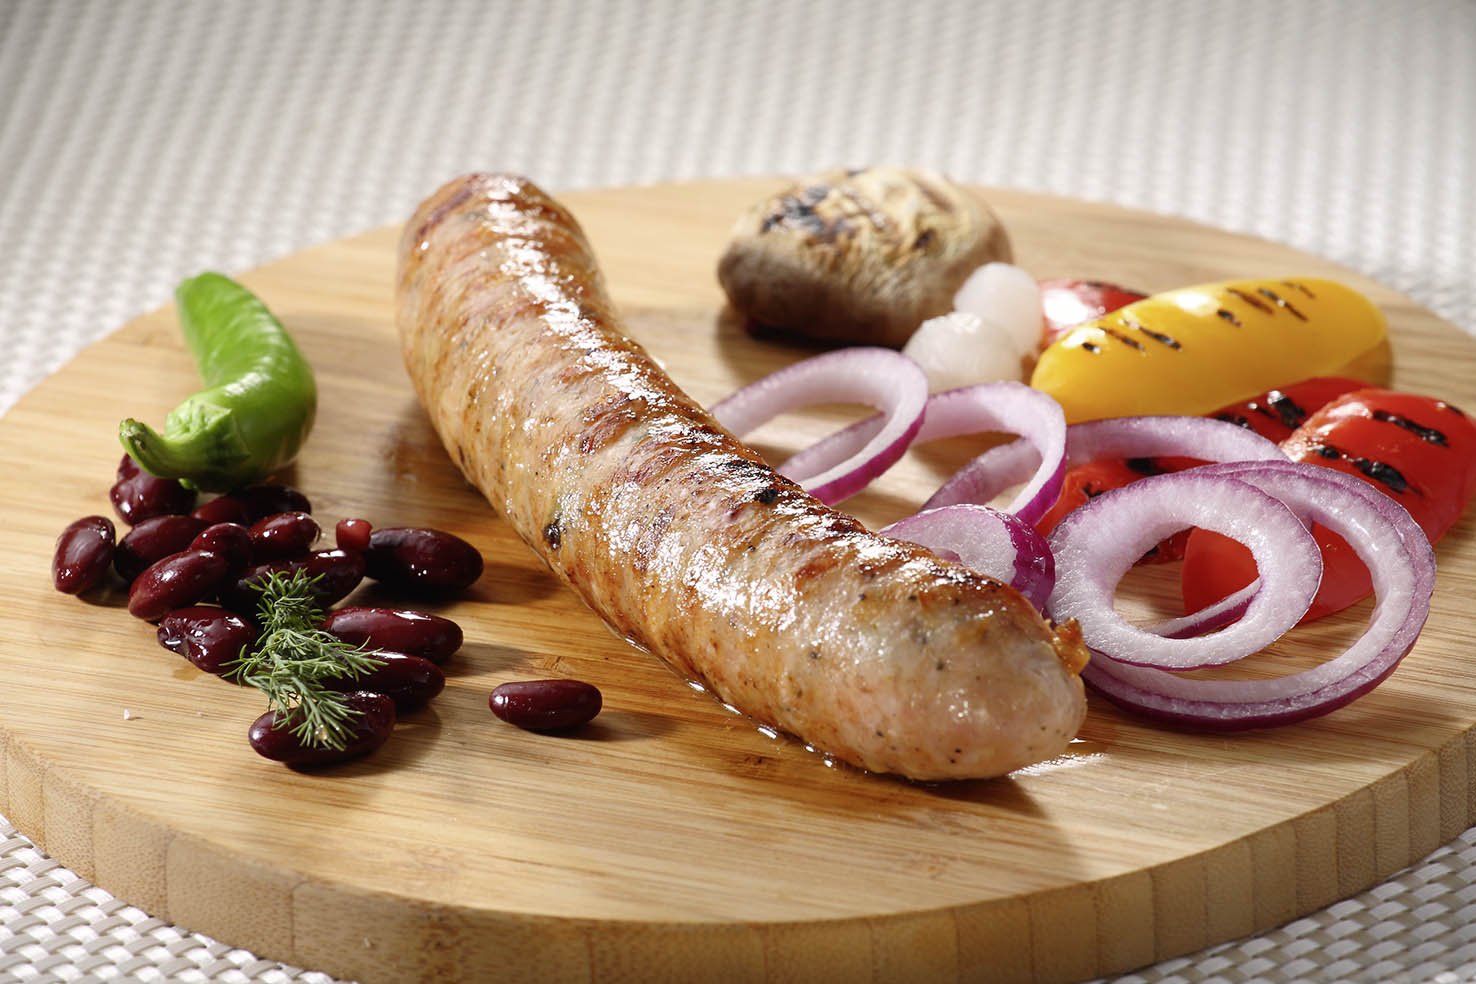 Grill chicken sausage with pistachio and Shiitake mushrooms 200g